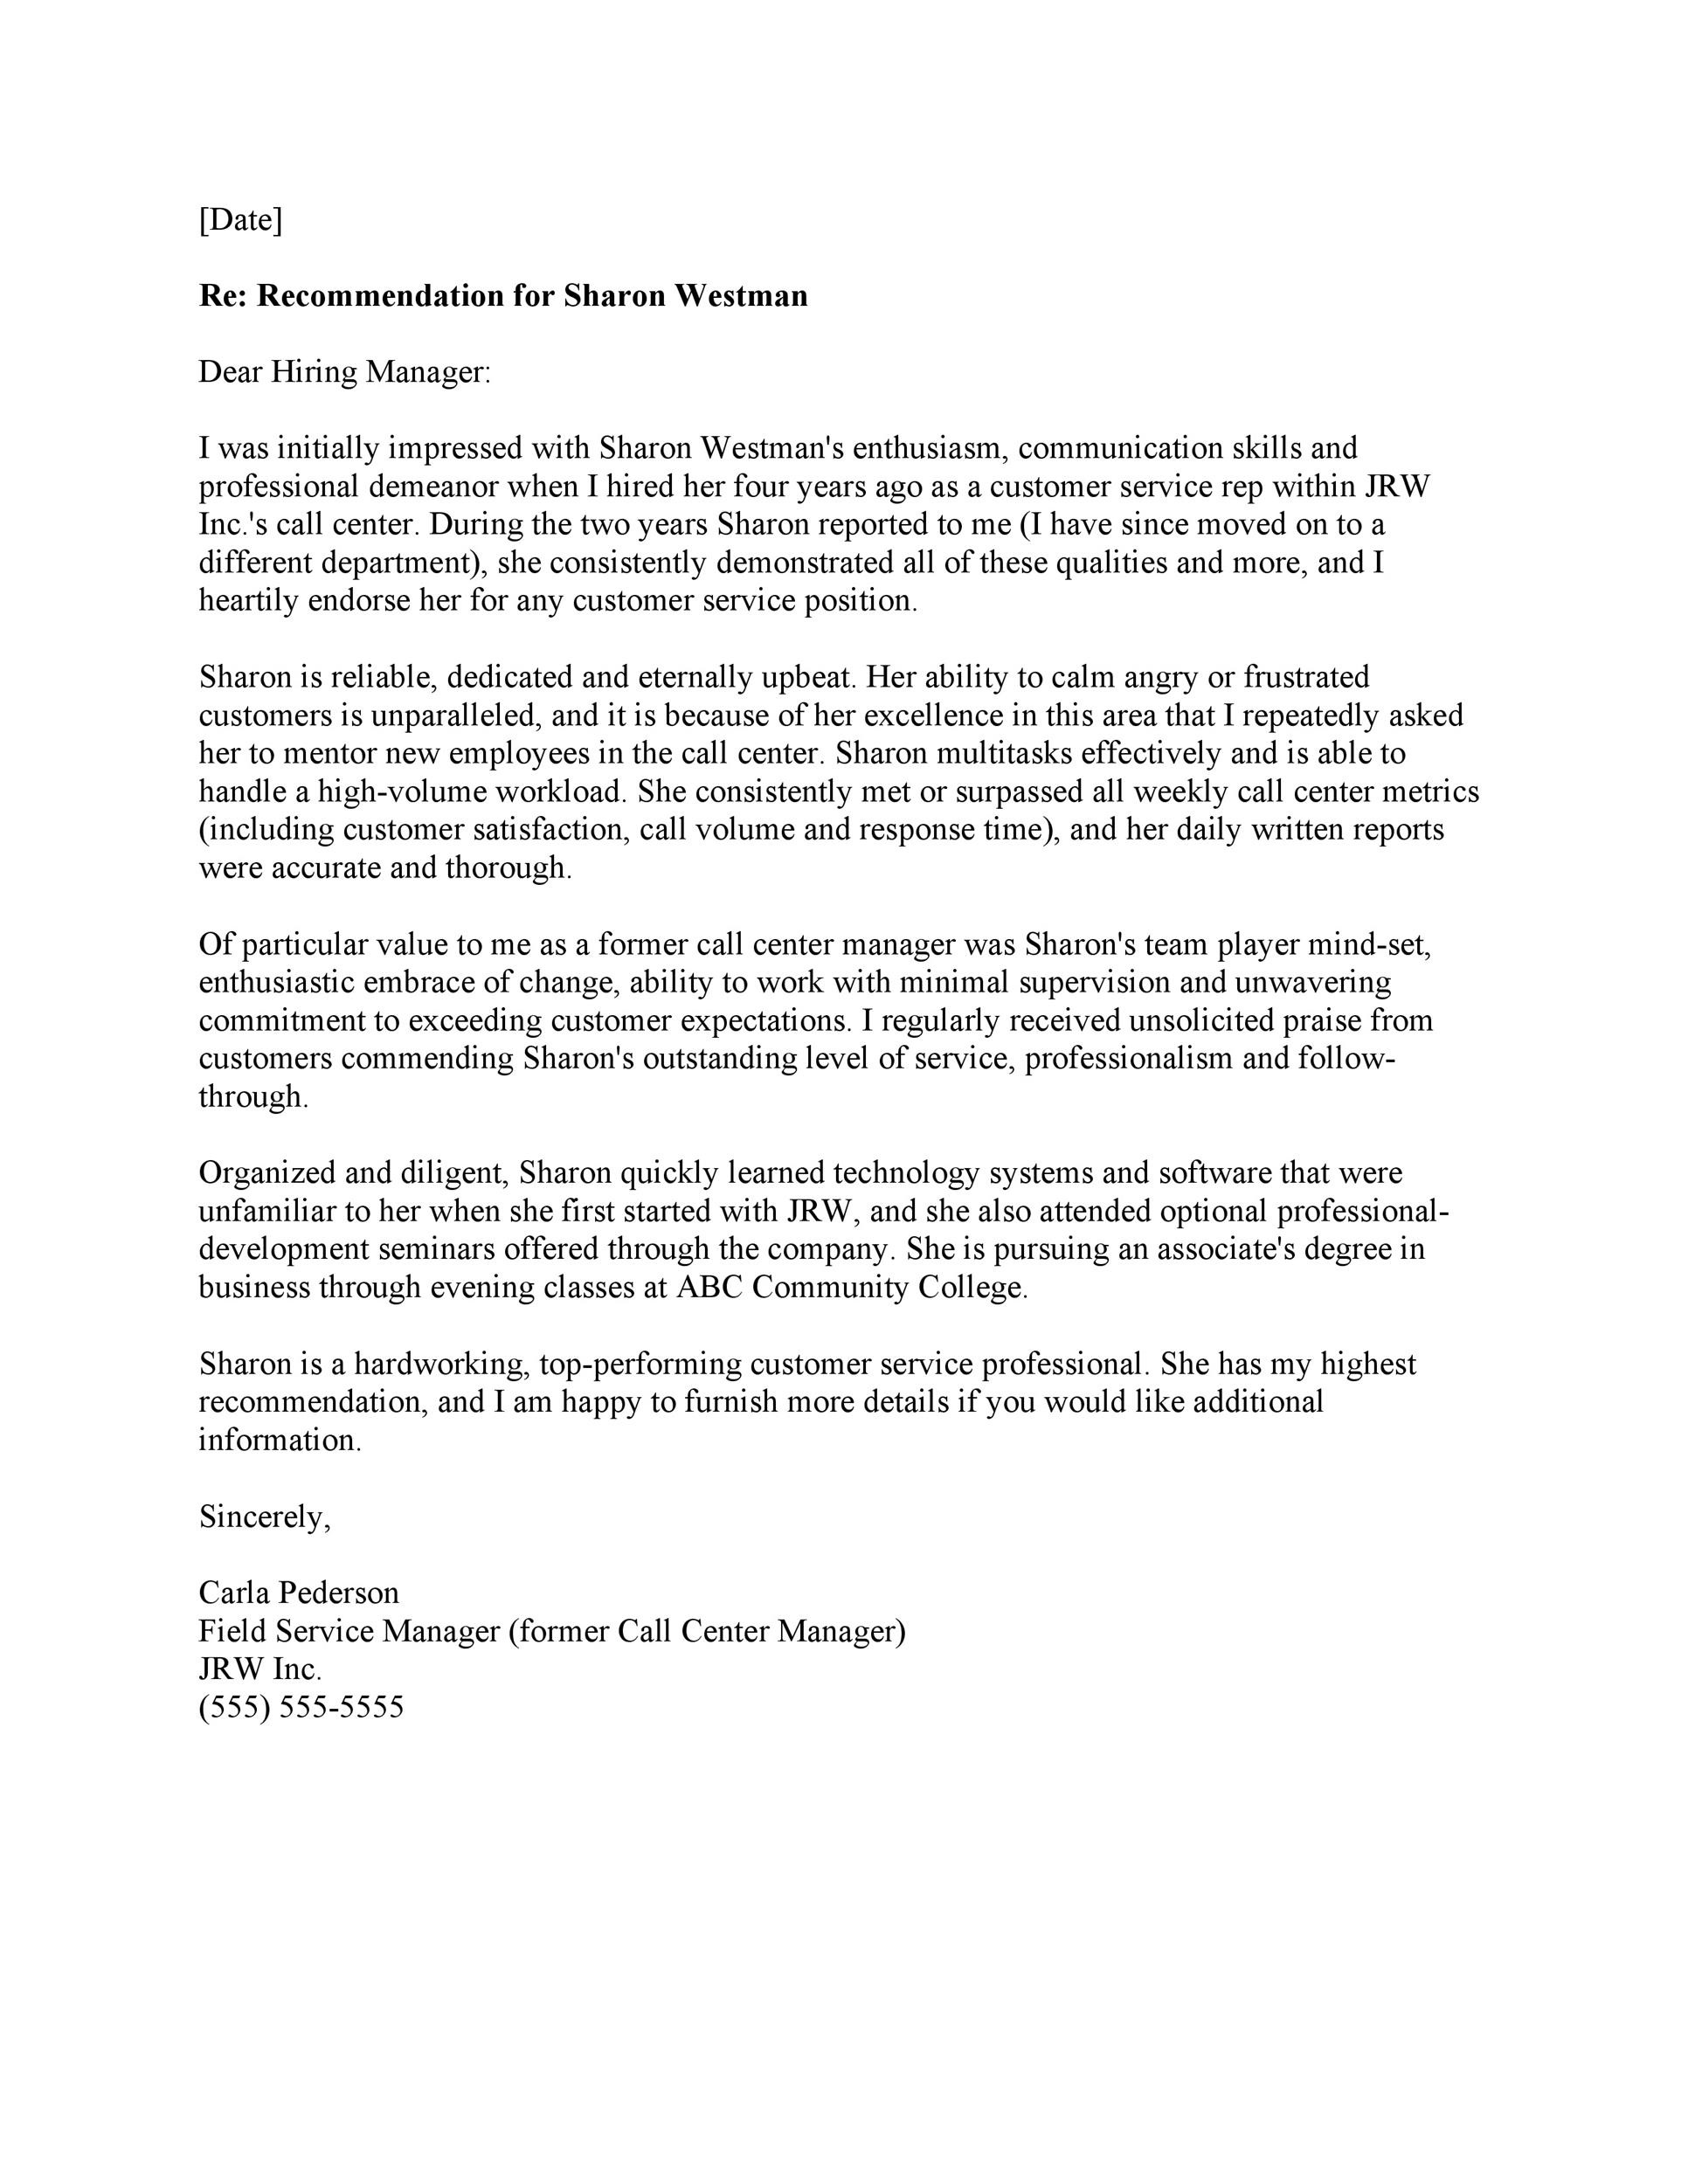 007 Fearsome Professional Reference Letter Template Inspiration  Nursing Free CharacterFull